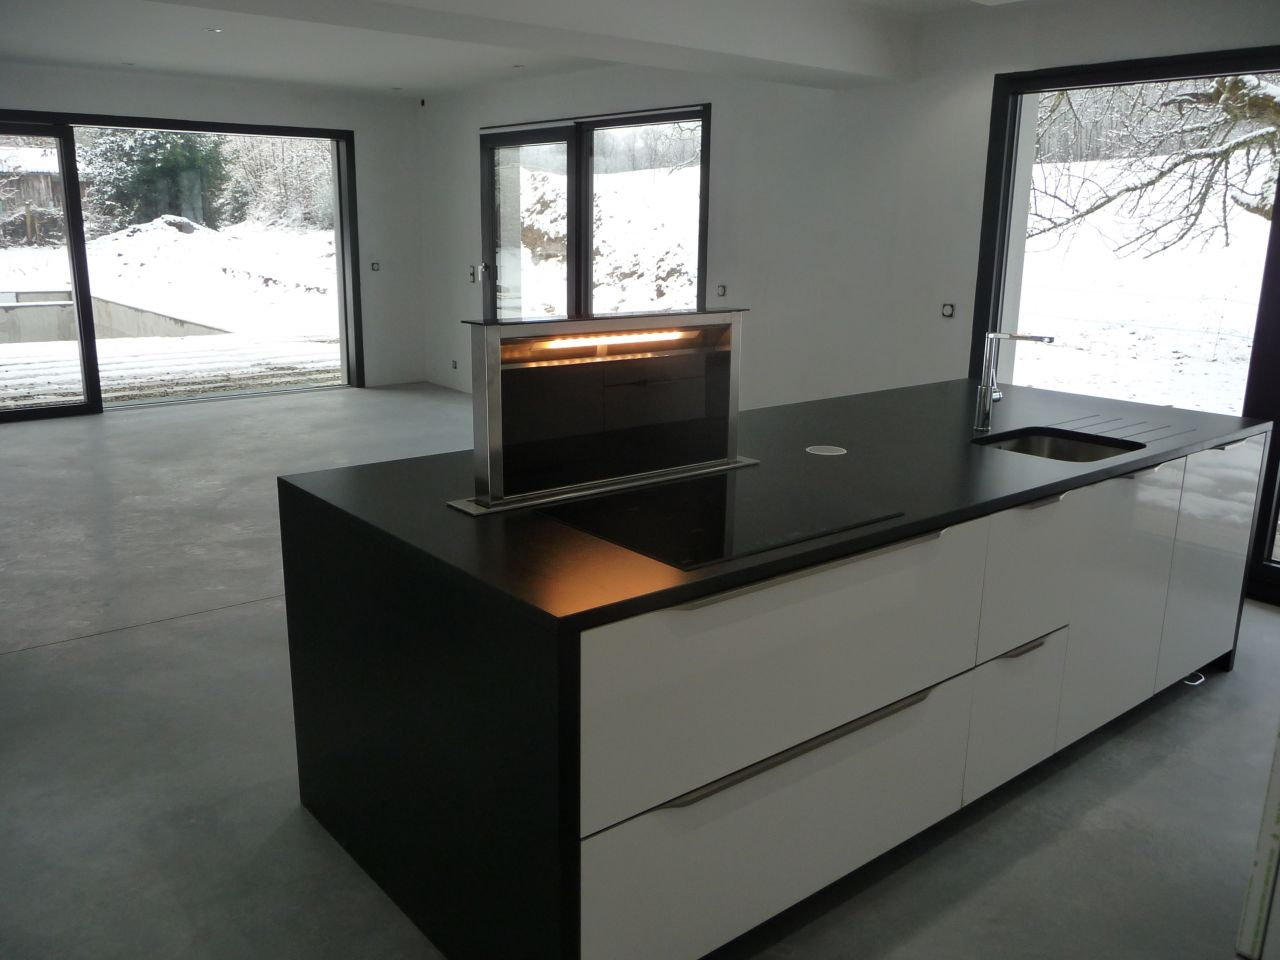 travaux du week end histoire de vue la cuisine la motte servolex savoie. Black Bedroom Furniture Sets. Home Design Ideas